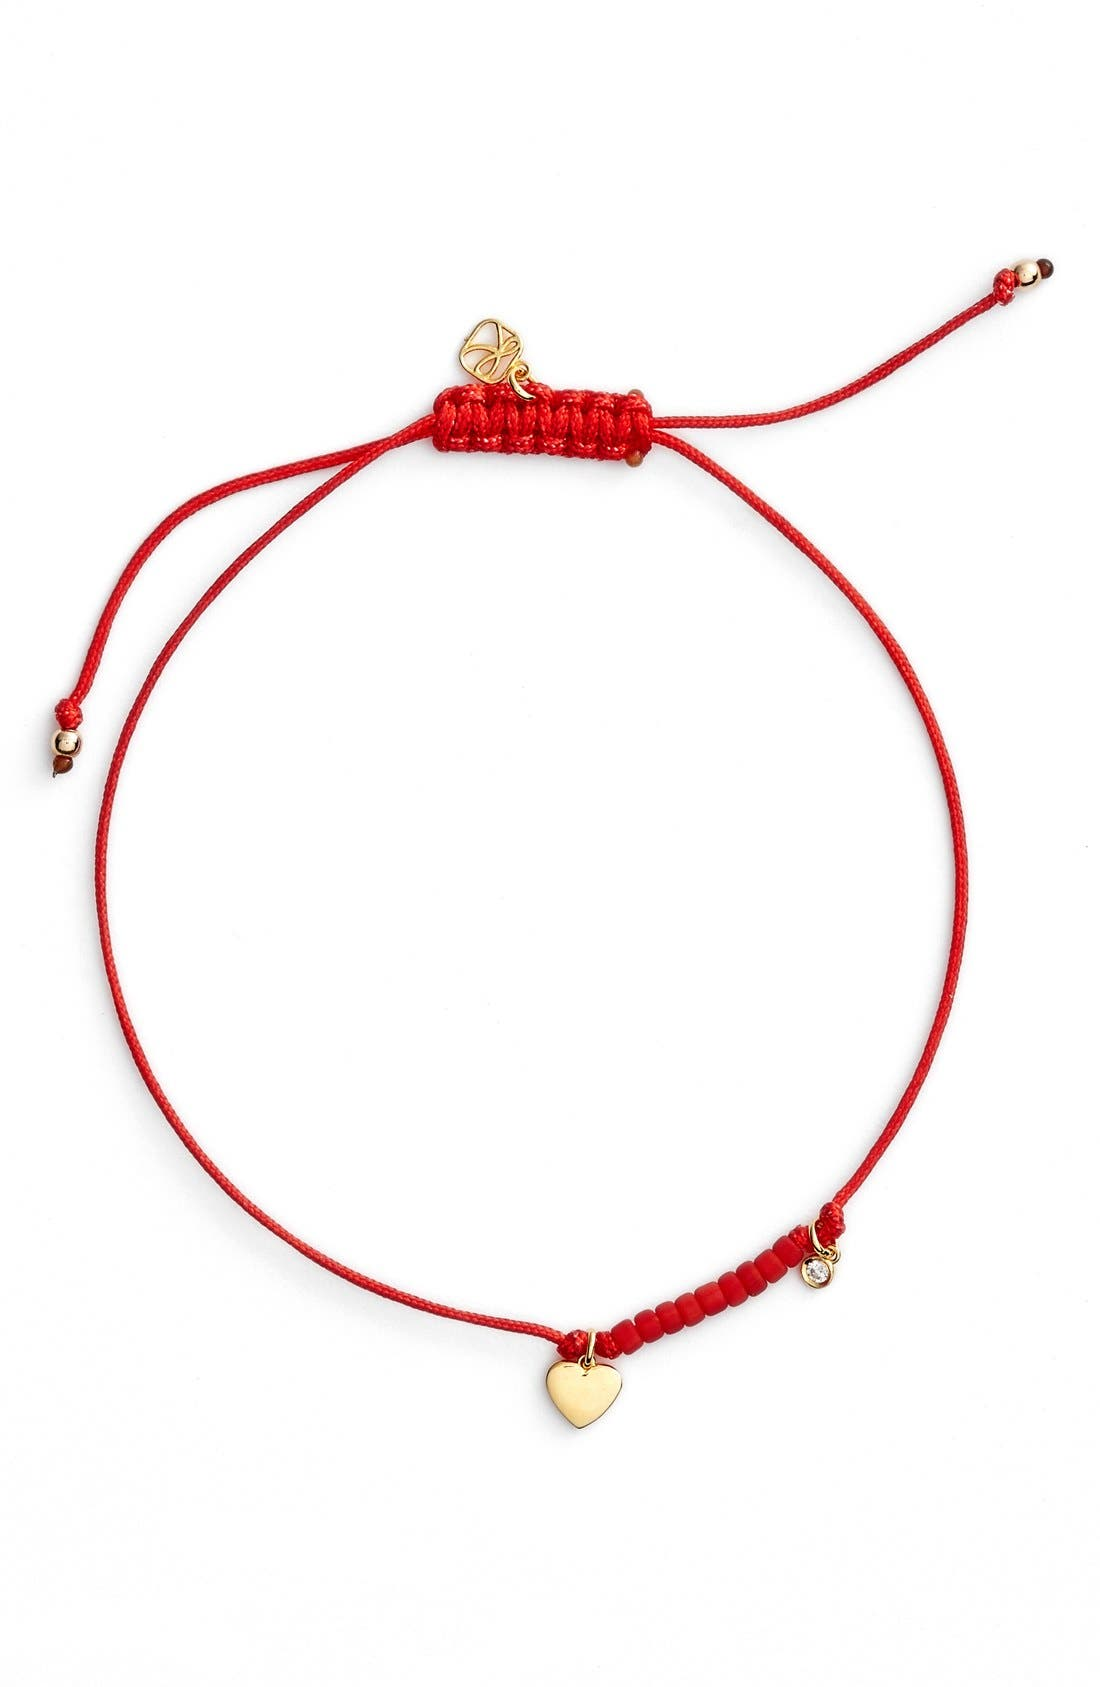 Diamond & Charm Friendship Bracelet,                         Main,                         color, Gold/ Red